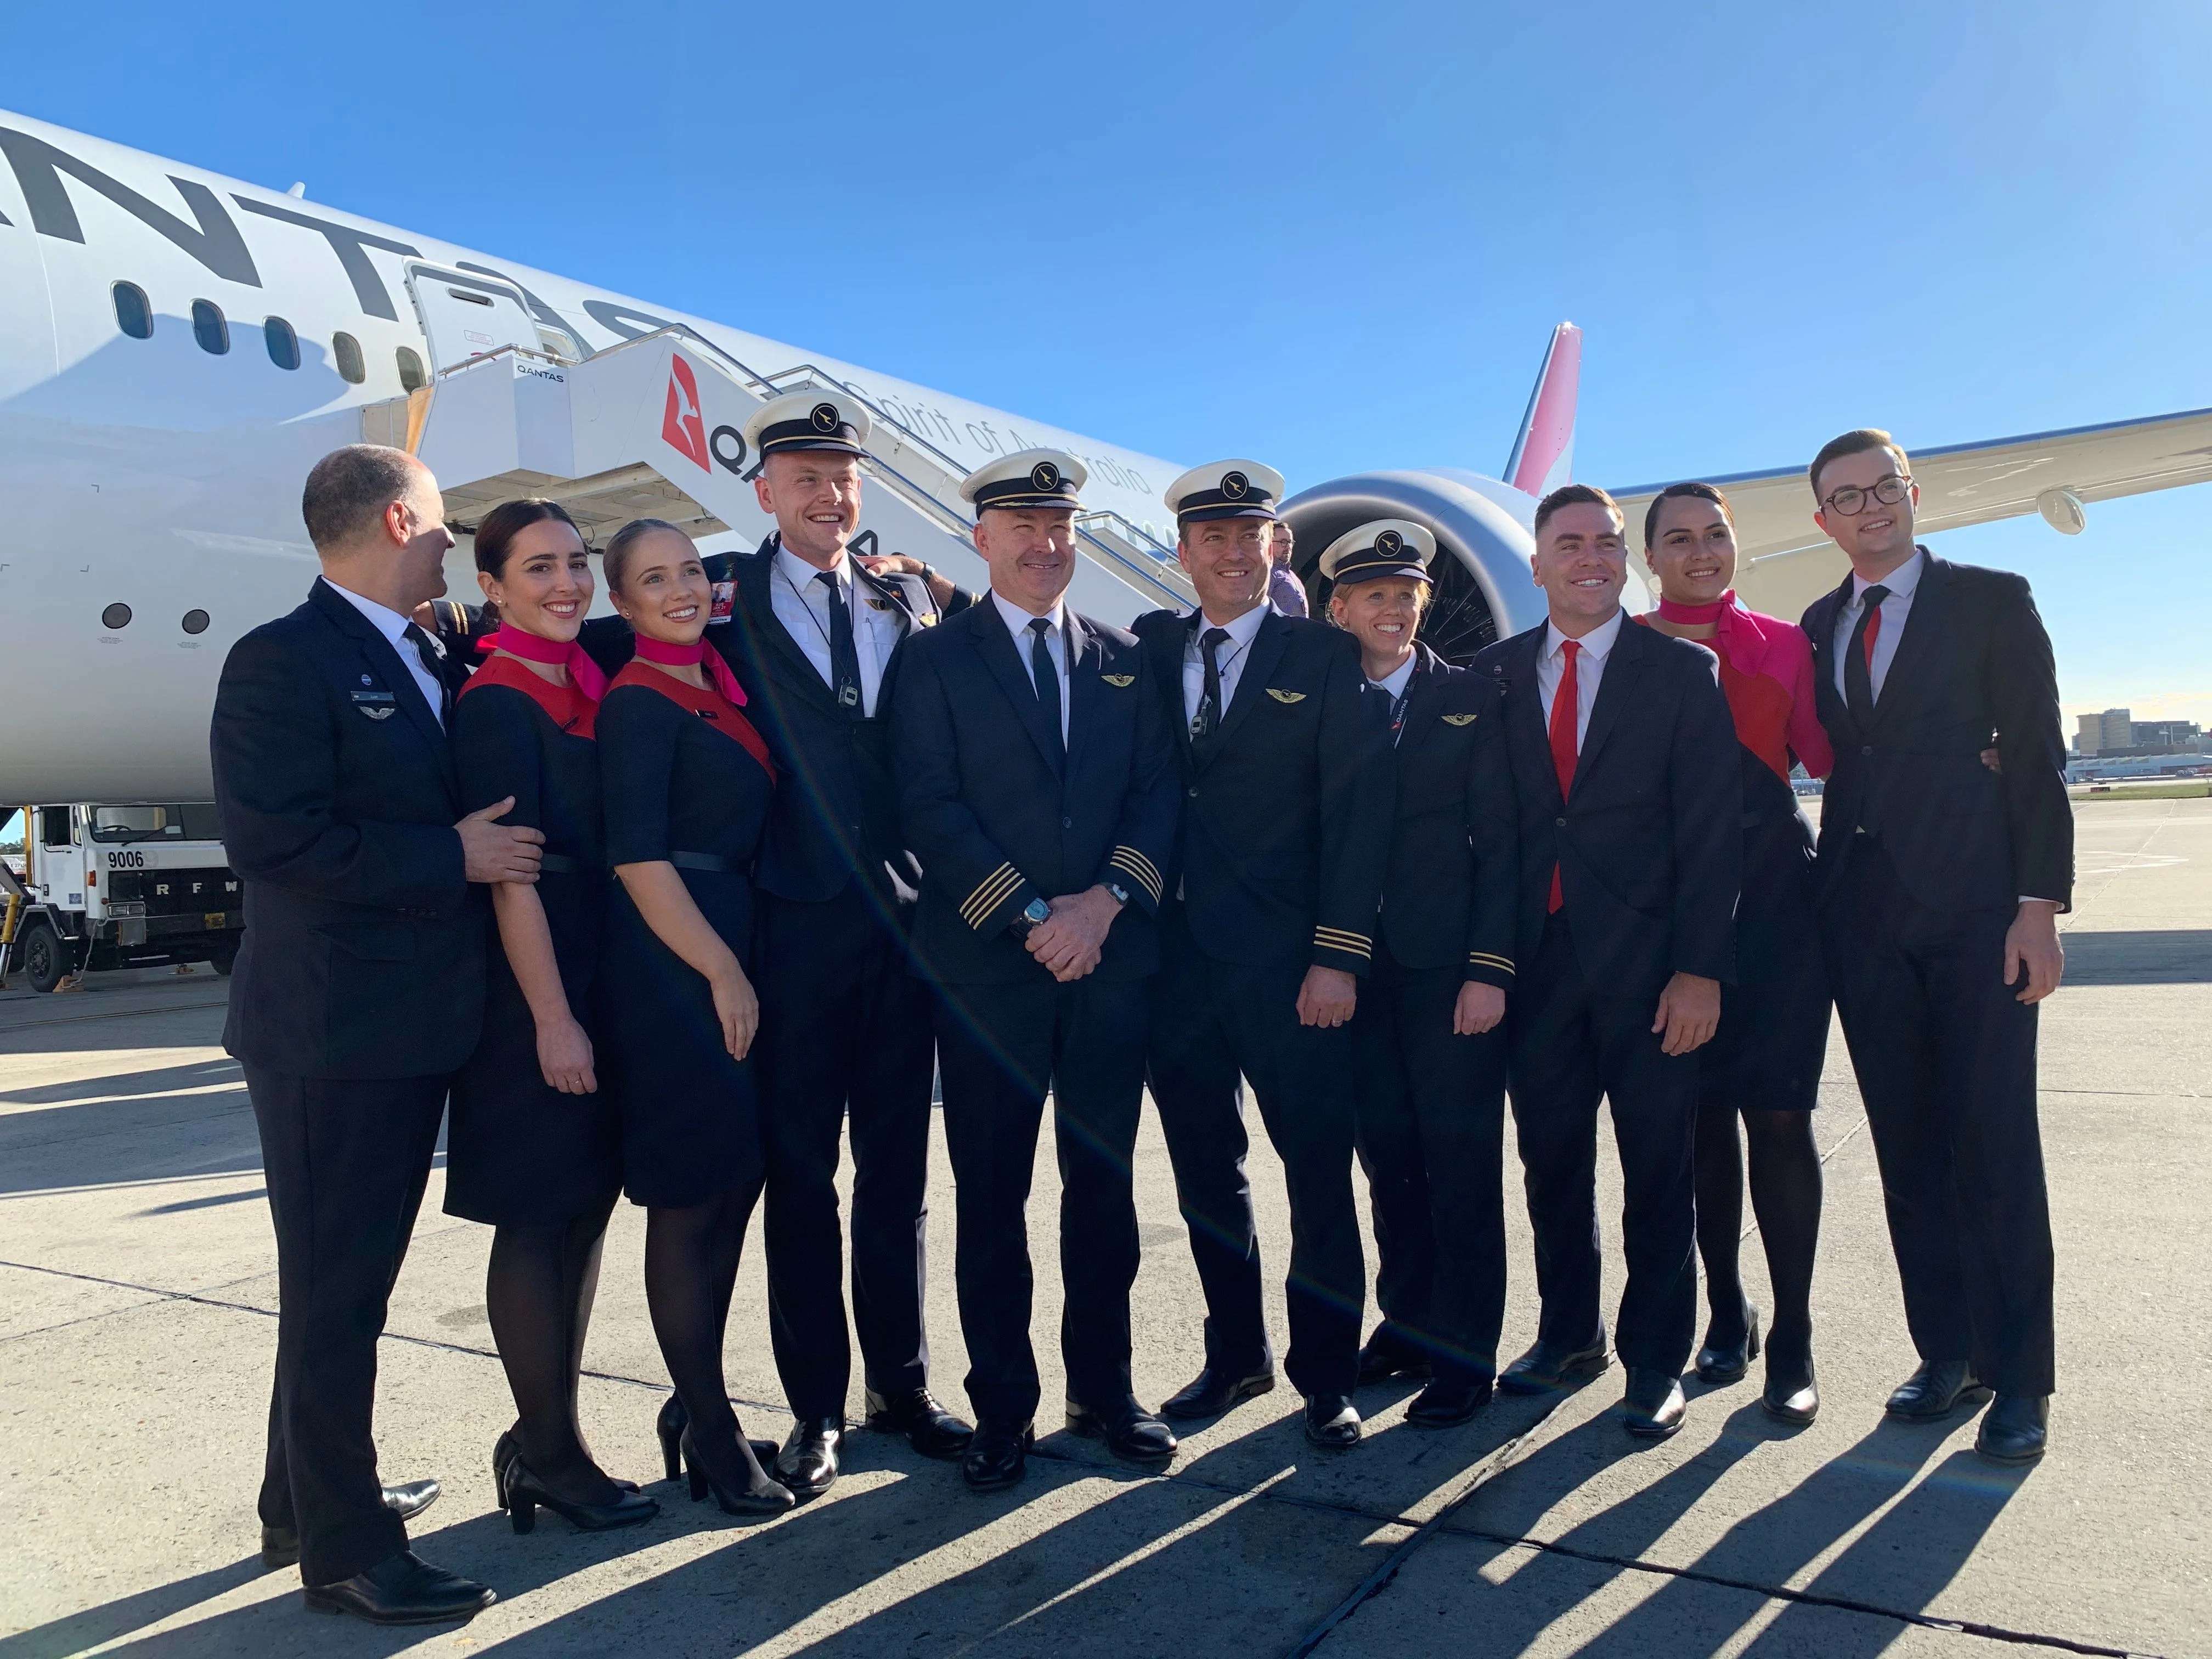 First look: Qantas Airways' historic Project Sunrise flight touches down in Sydney